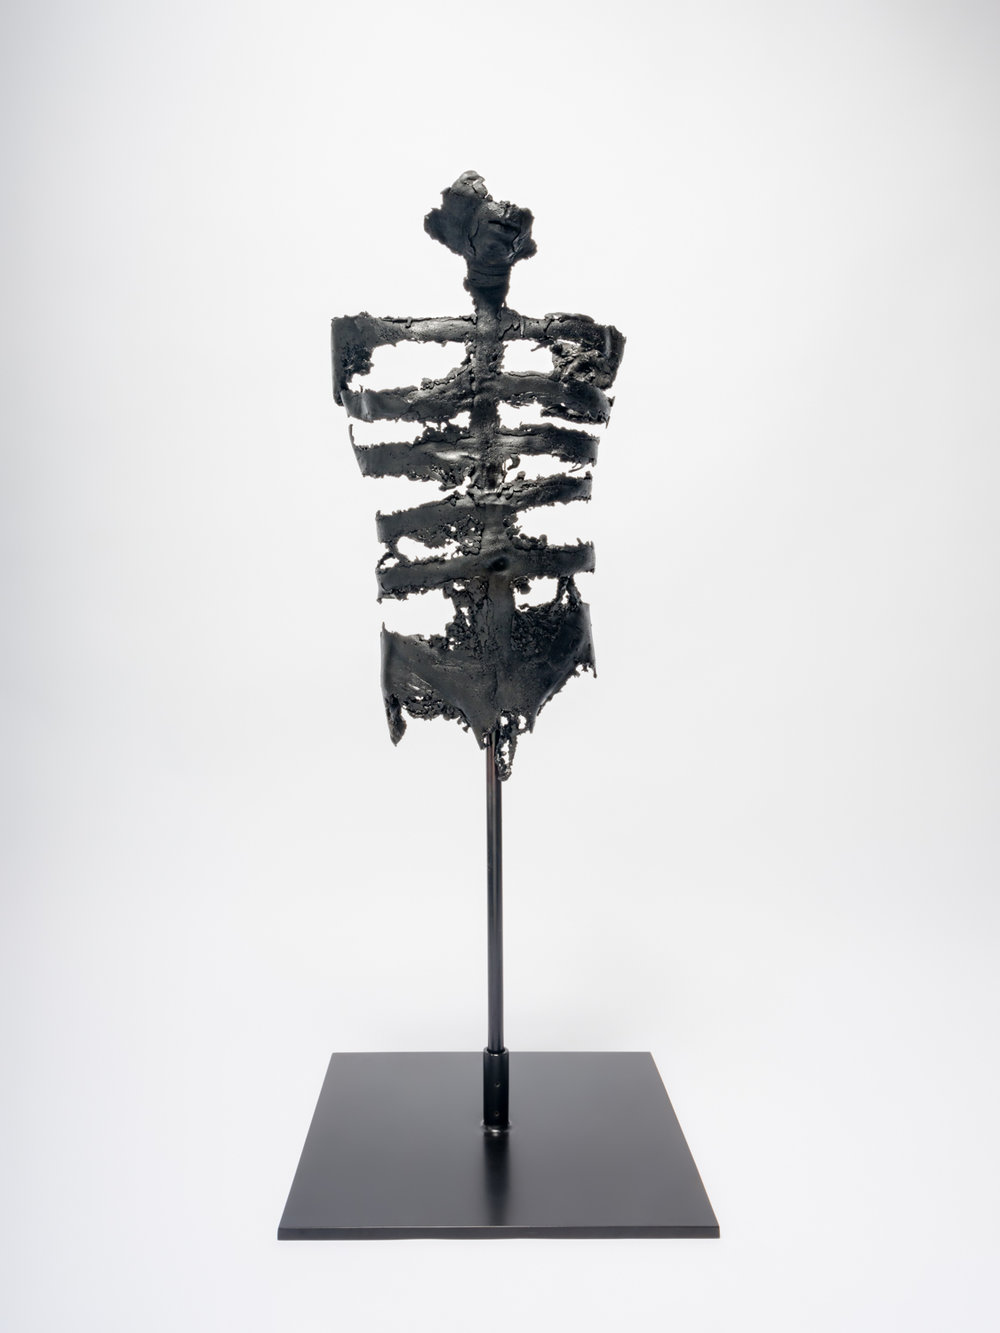 Naotaka Hiro Lonesome Tree a, 2018 Bronze, stainless steel rod, steel, black patina 52h x 20w x 12d in NaoH012